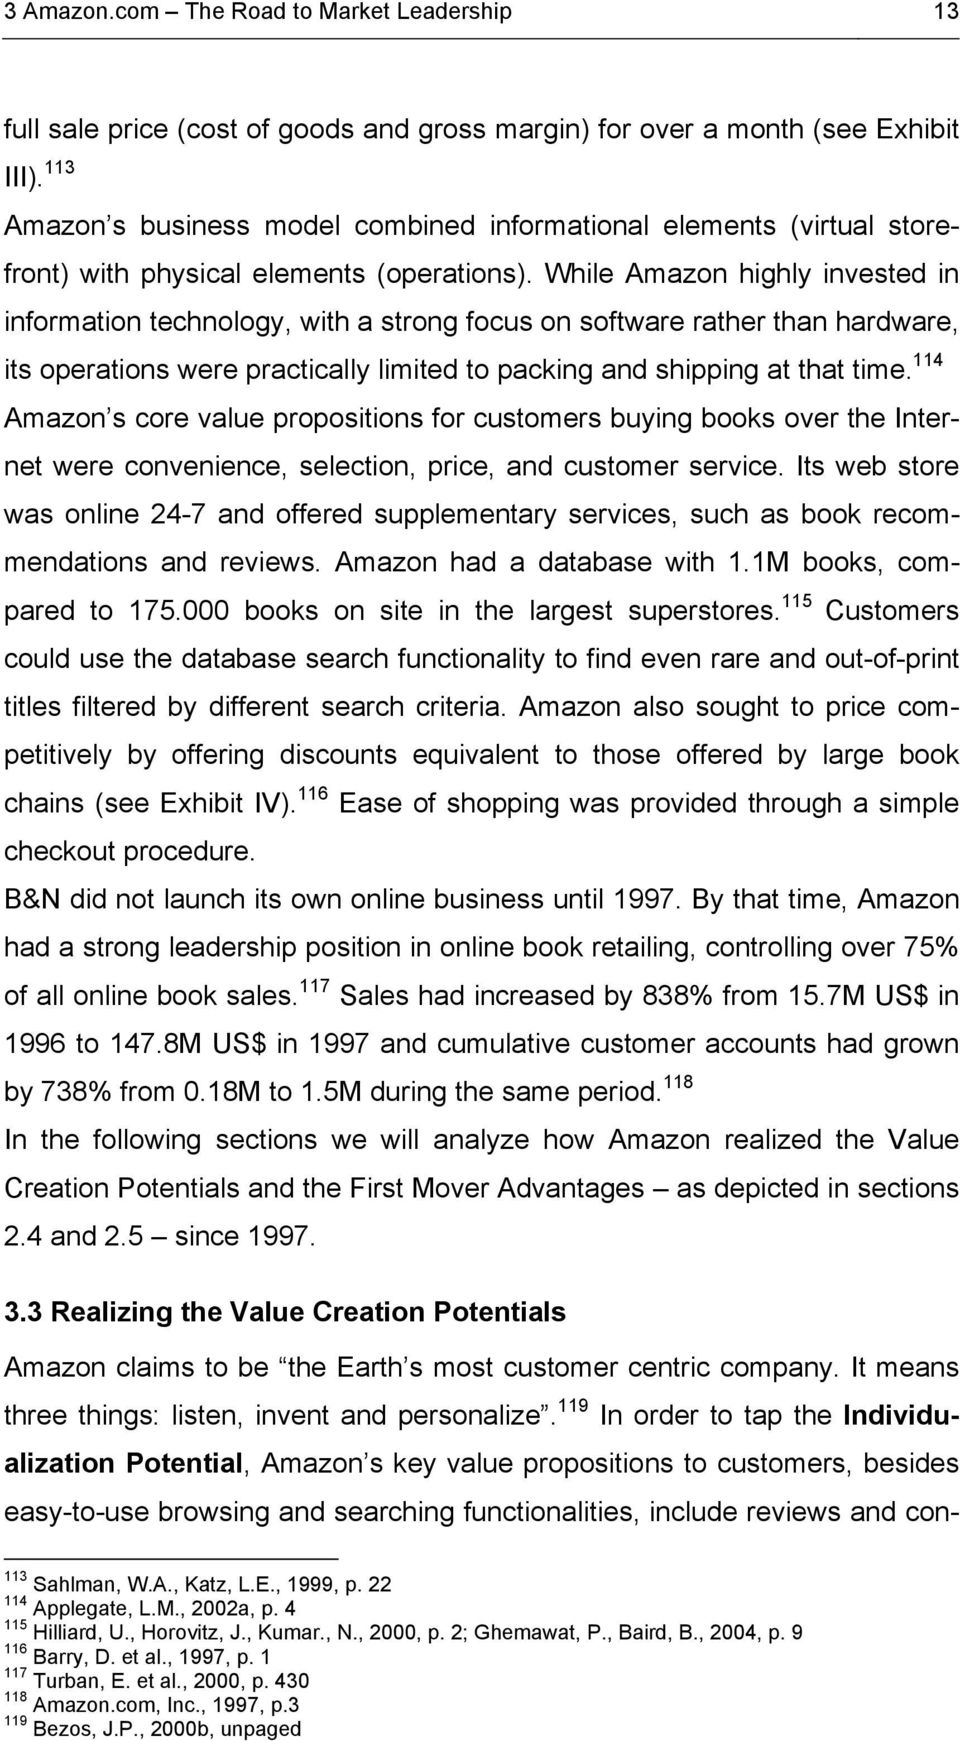 While Amazon highly invested in information technology, with a strong focus on software rather than hardware, its operations were practically limited to packing and shipping at that time.